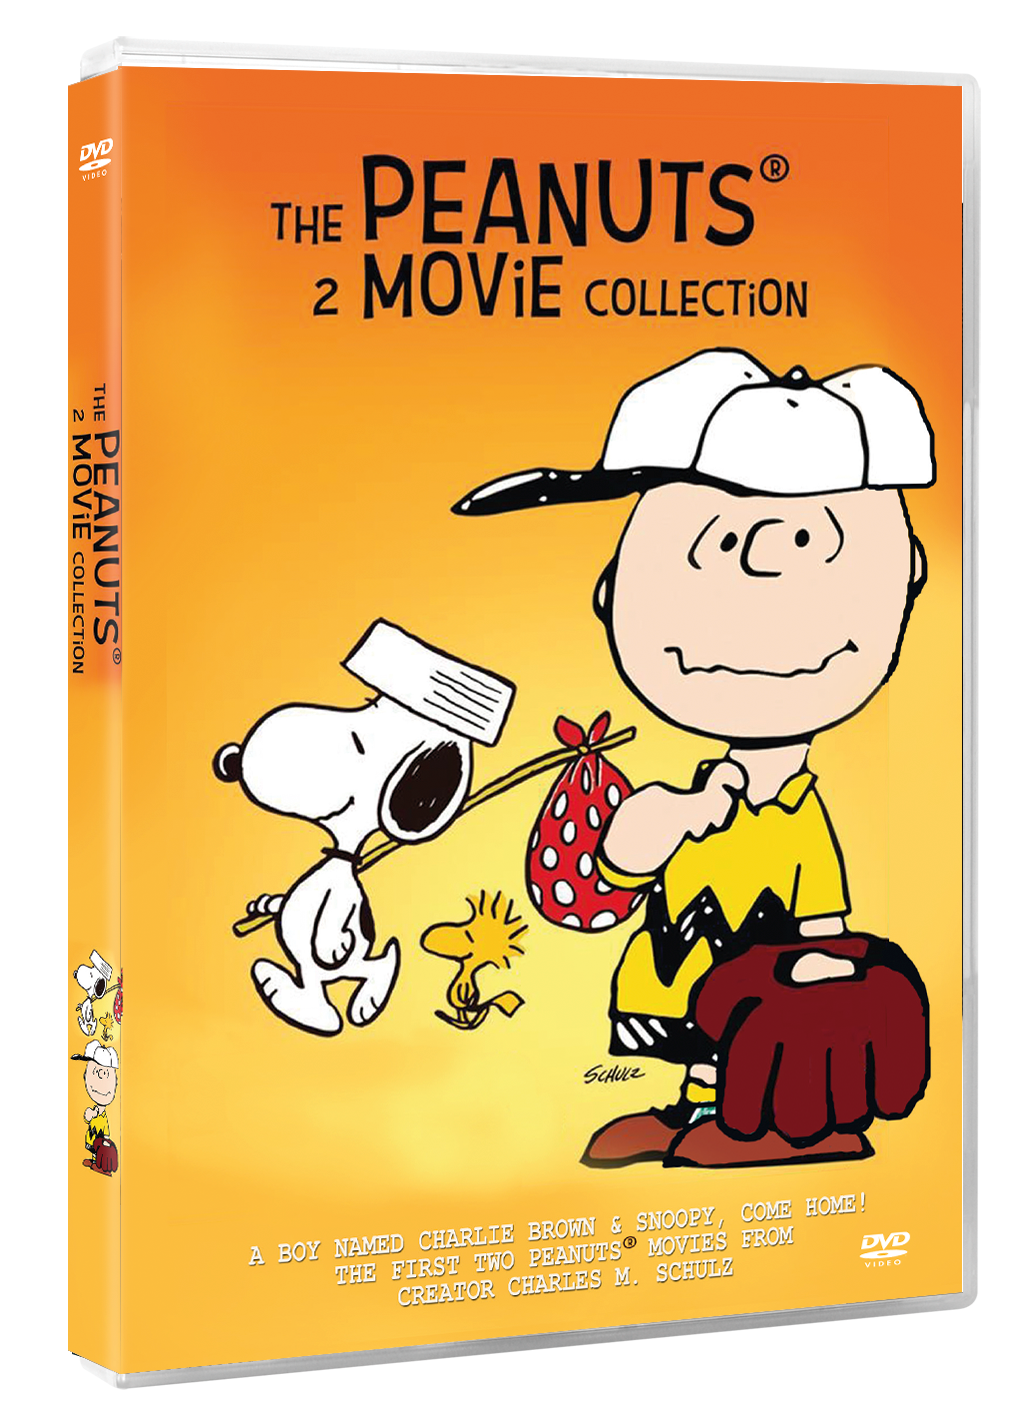 Snoopy The Peanuts 2 Movie Collection DVD